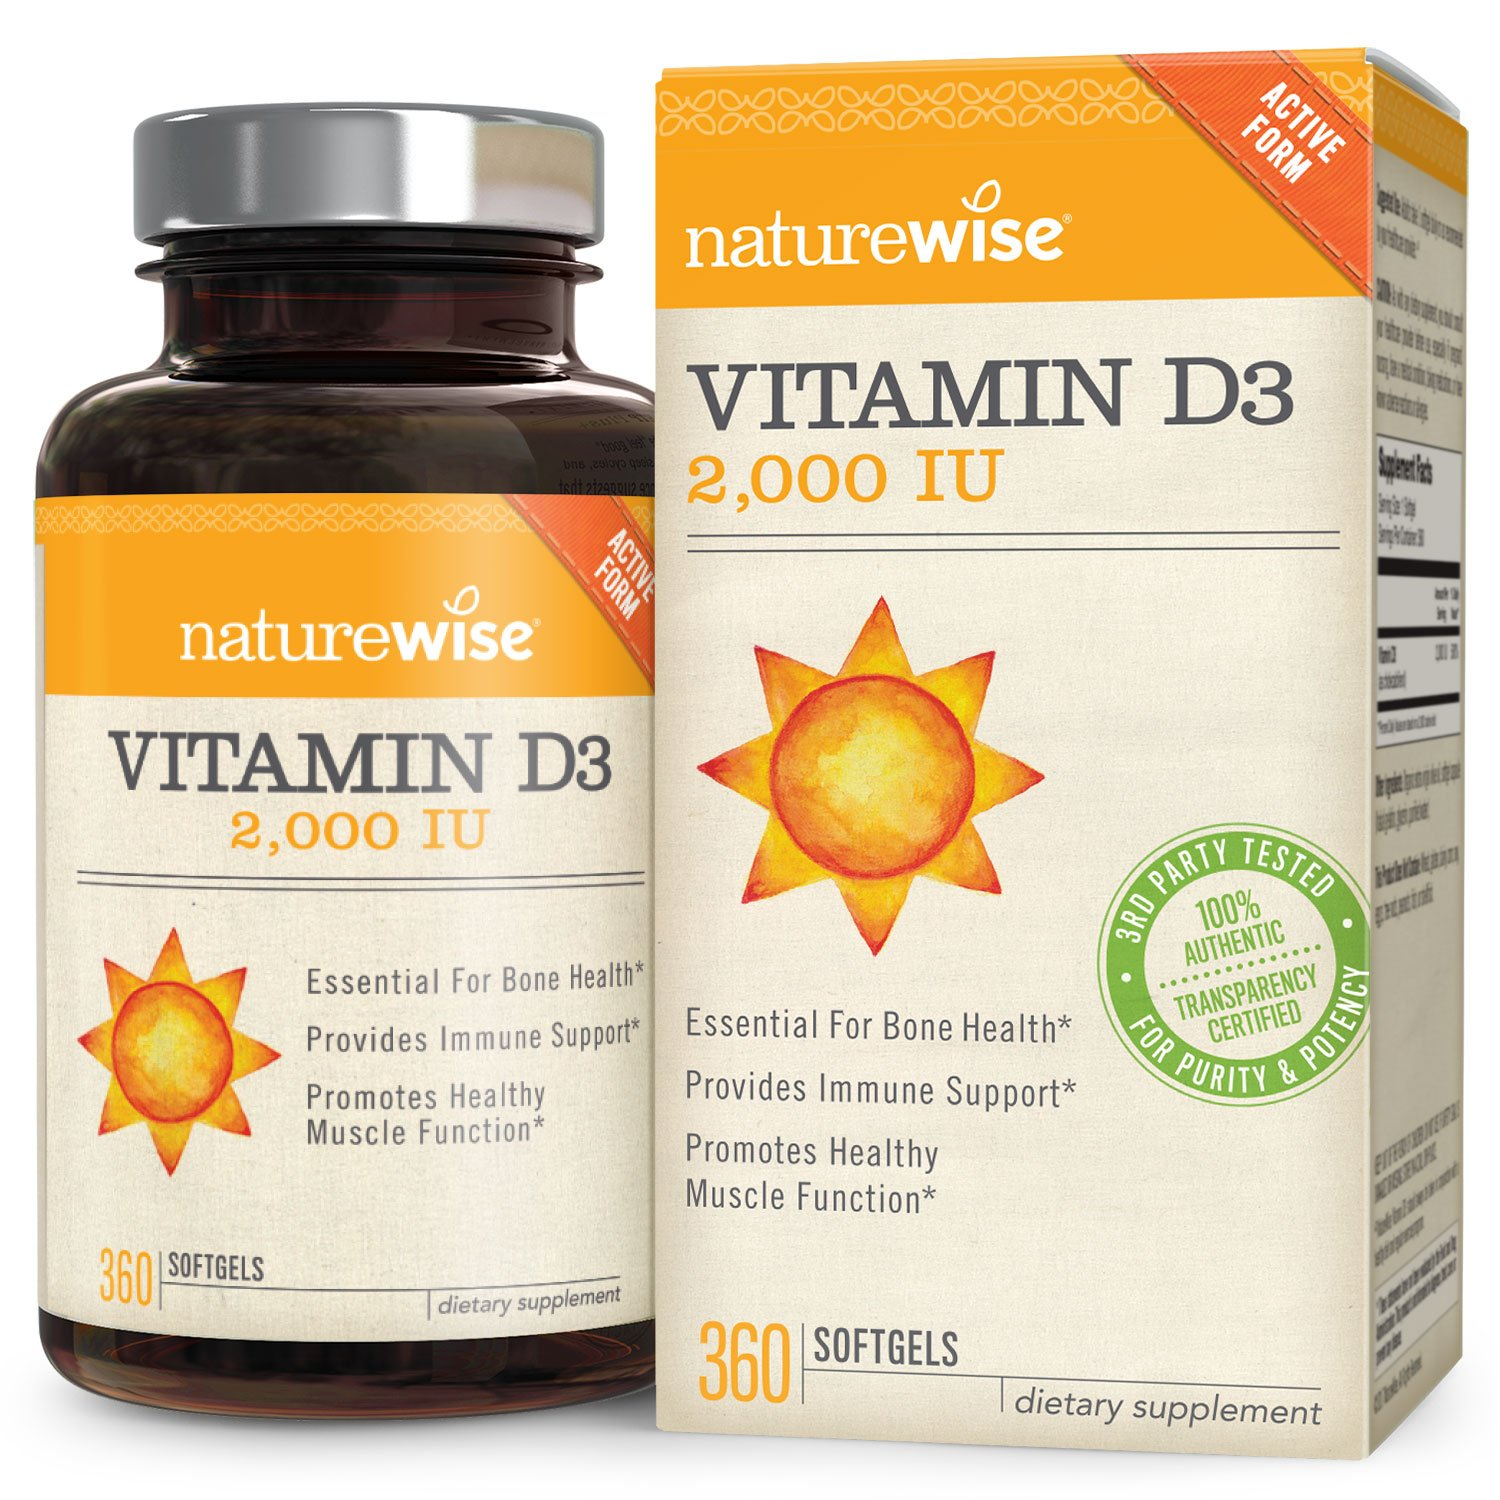 NatureWise Vitamin D3 2,000 IU for Healthy Muscle Function, Bone Health and Immune Support, Non-GMO, Gluten-Free in Cold-Pressed Organic Olive Oil,1-year supply, 360 count